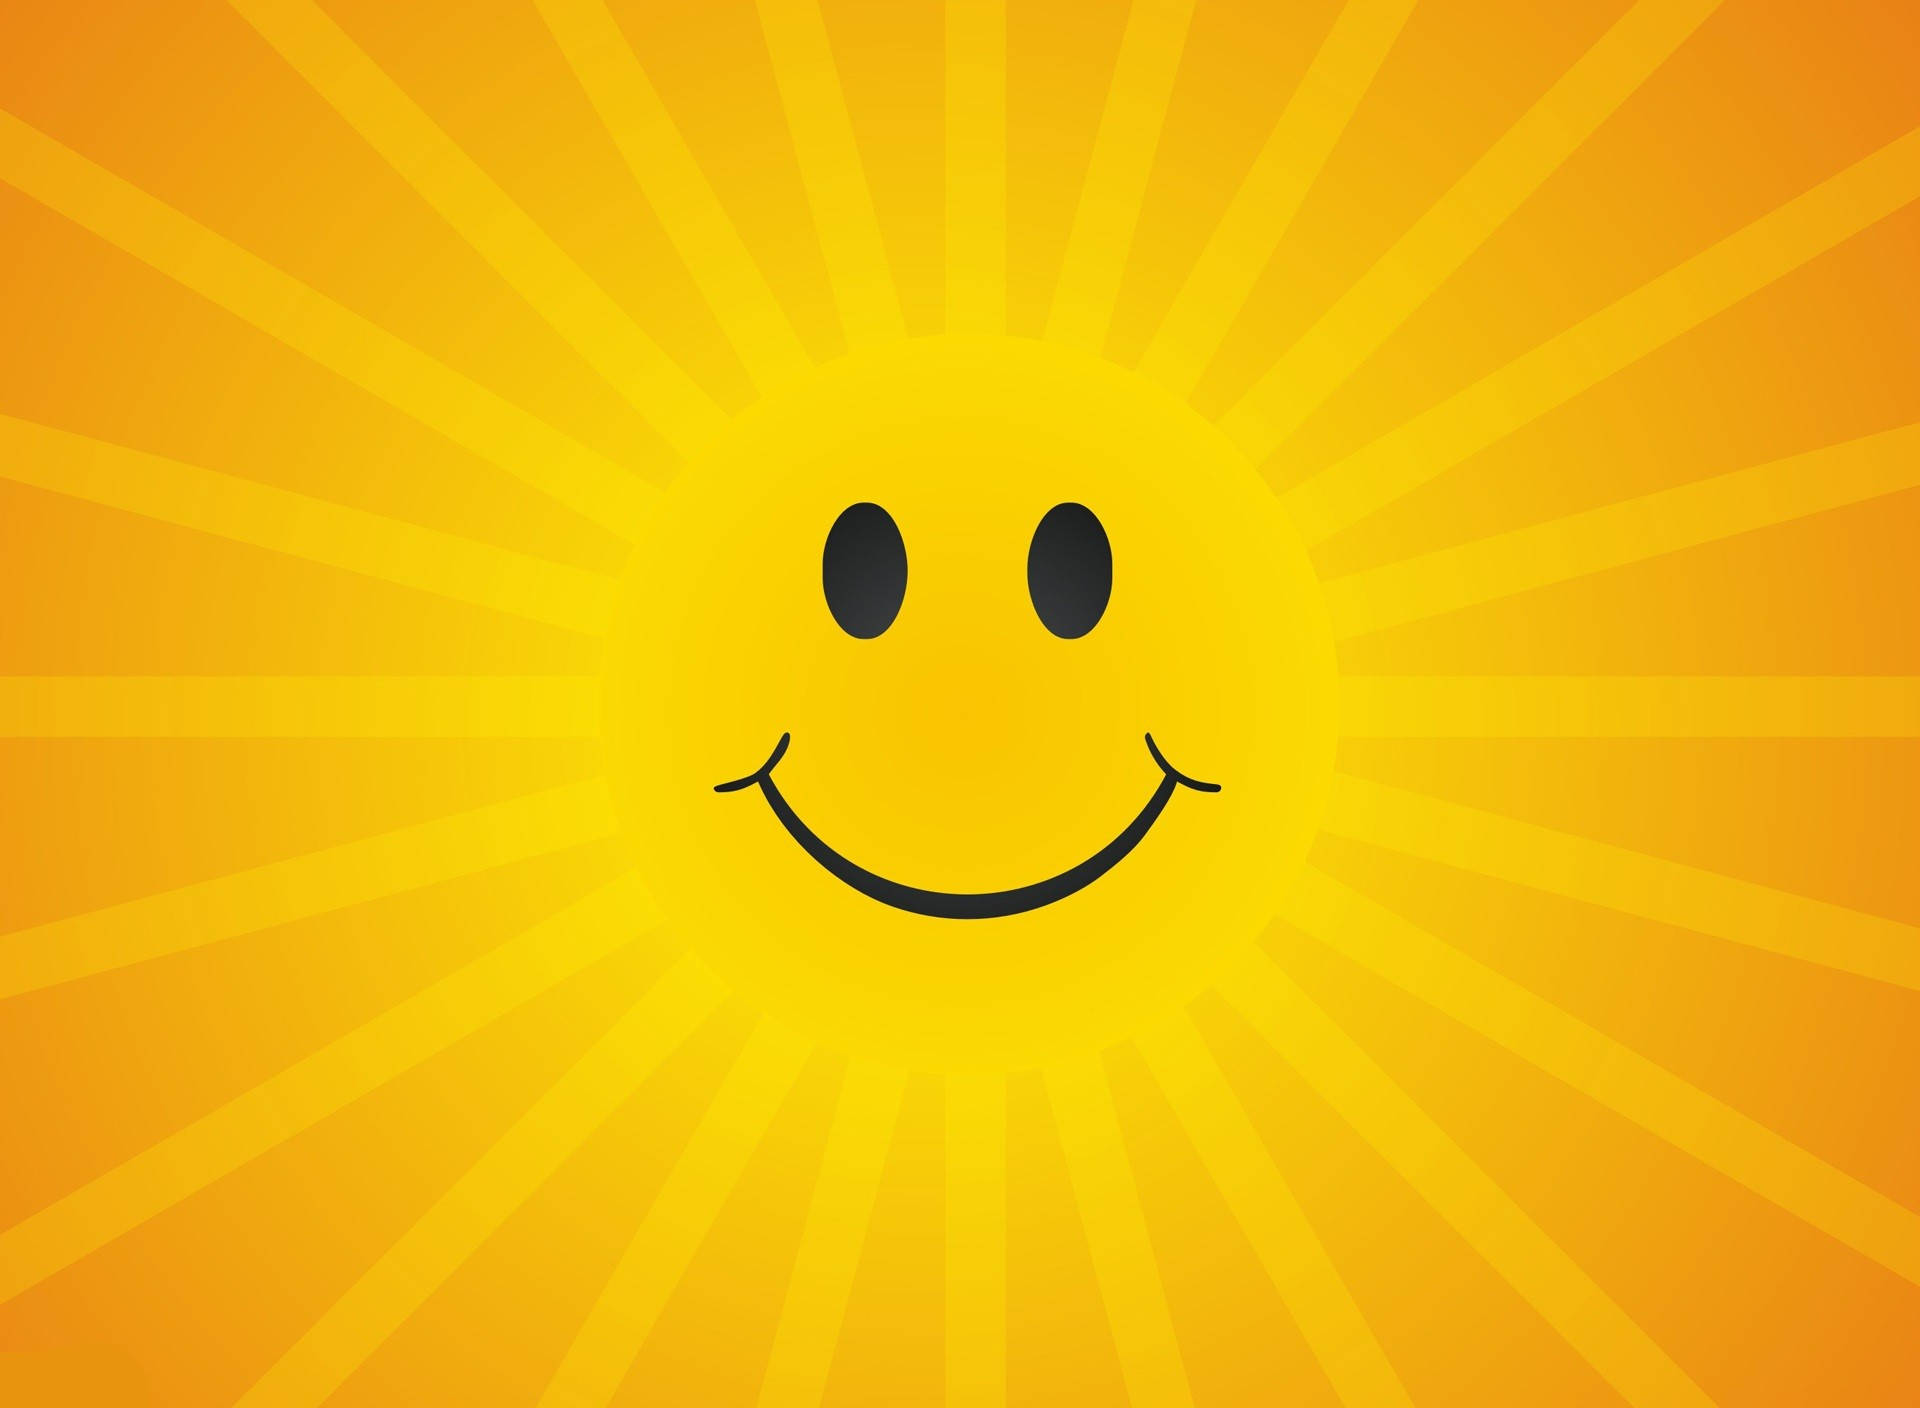 Smiley Face Wallpaper Screensavers: Smiley Faces Wallpapers (53+ Background Pictures